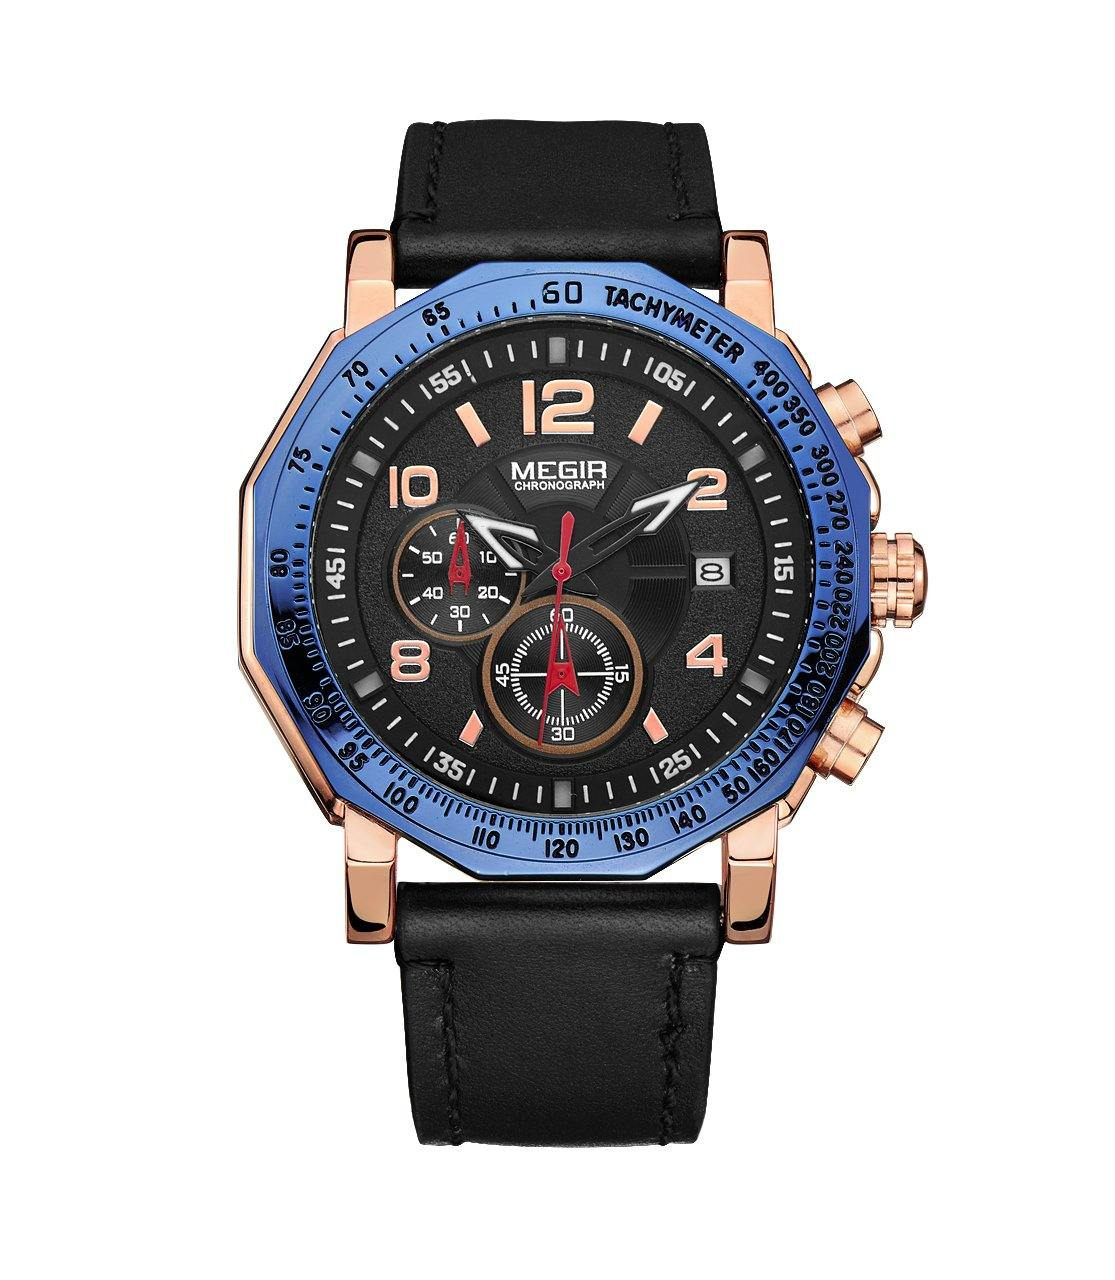 MEGIR men's sports watch, fashion leather strap, chronograph, military quartz watches 2048 - MEGIR